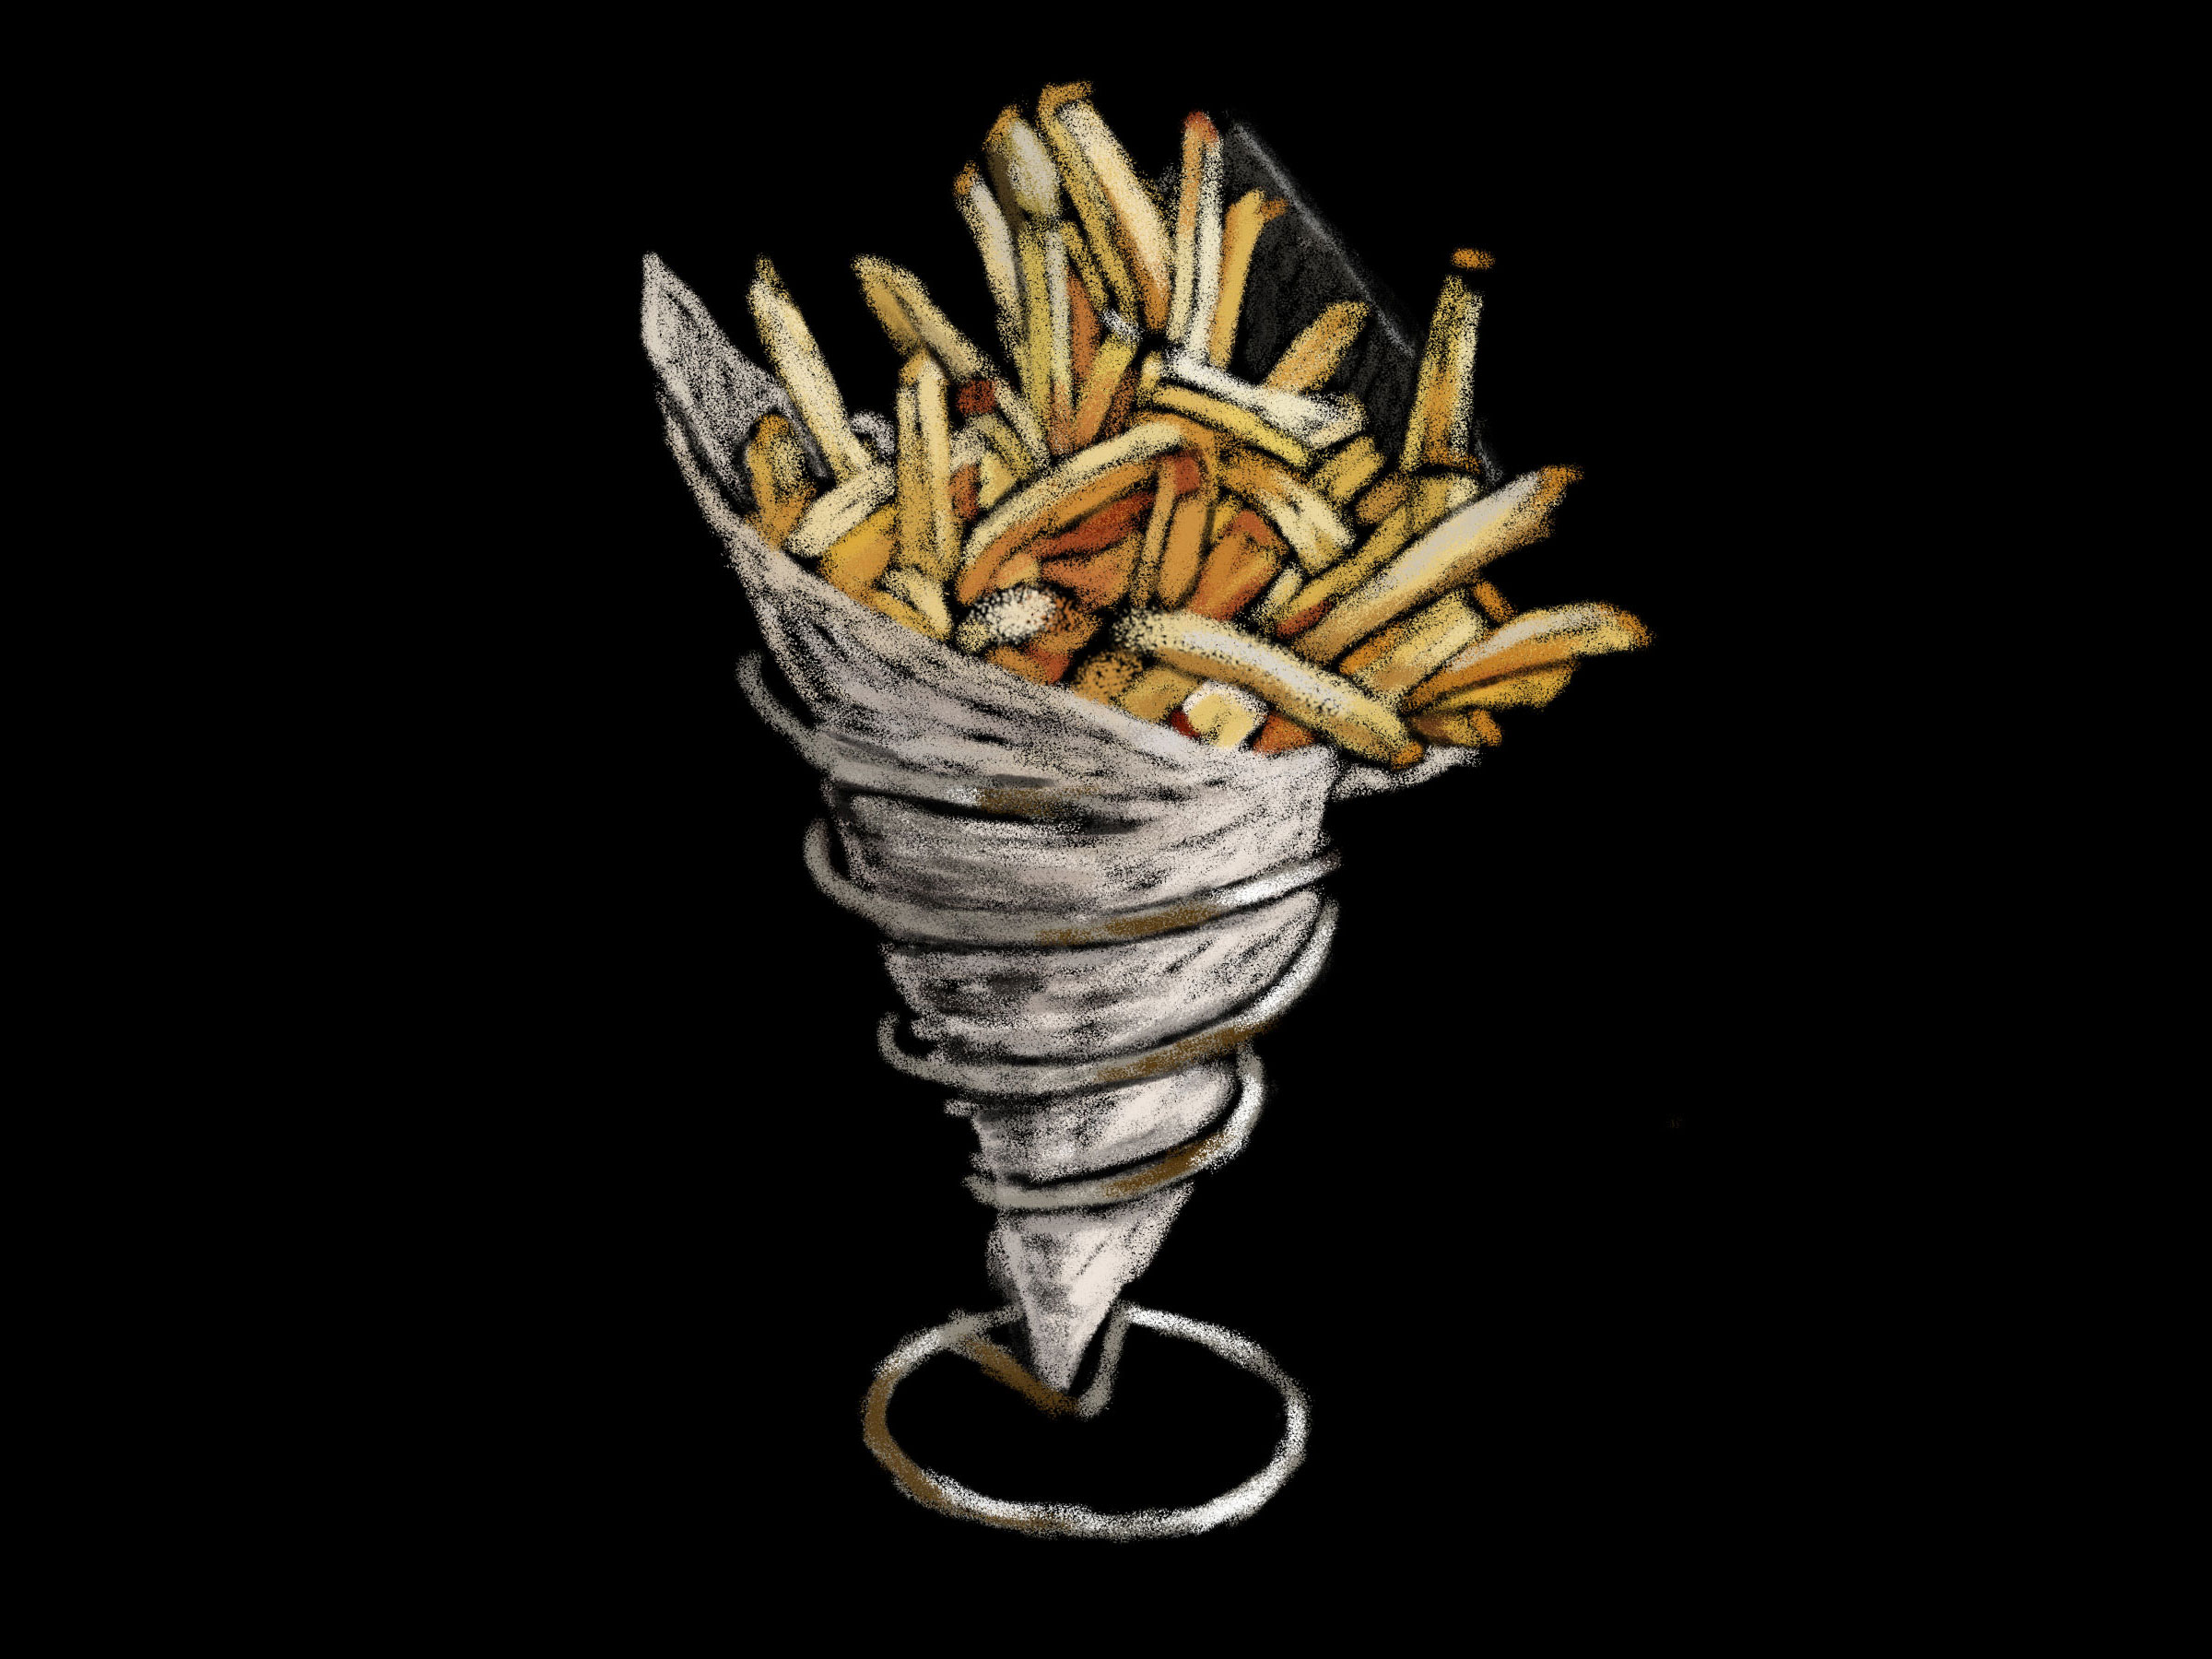 Chalk Drawing of French Fries